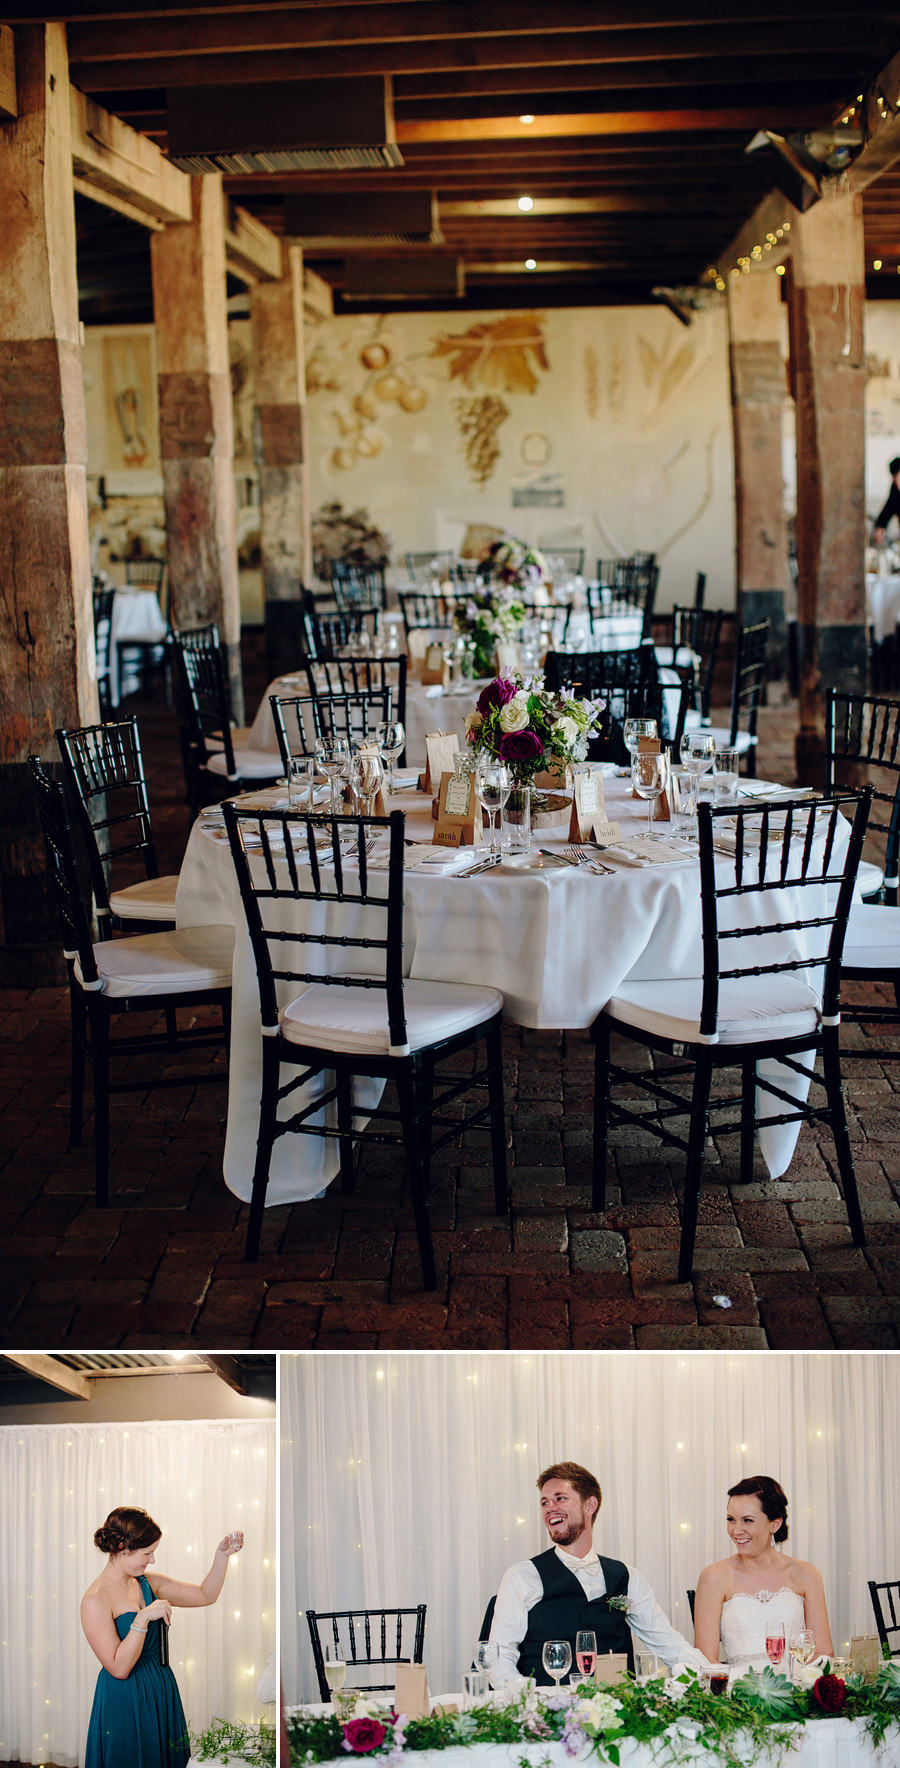 Vintage Wedding Photography: Reception Details